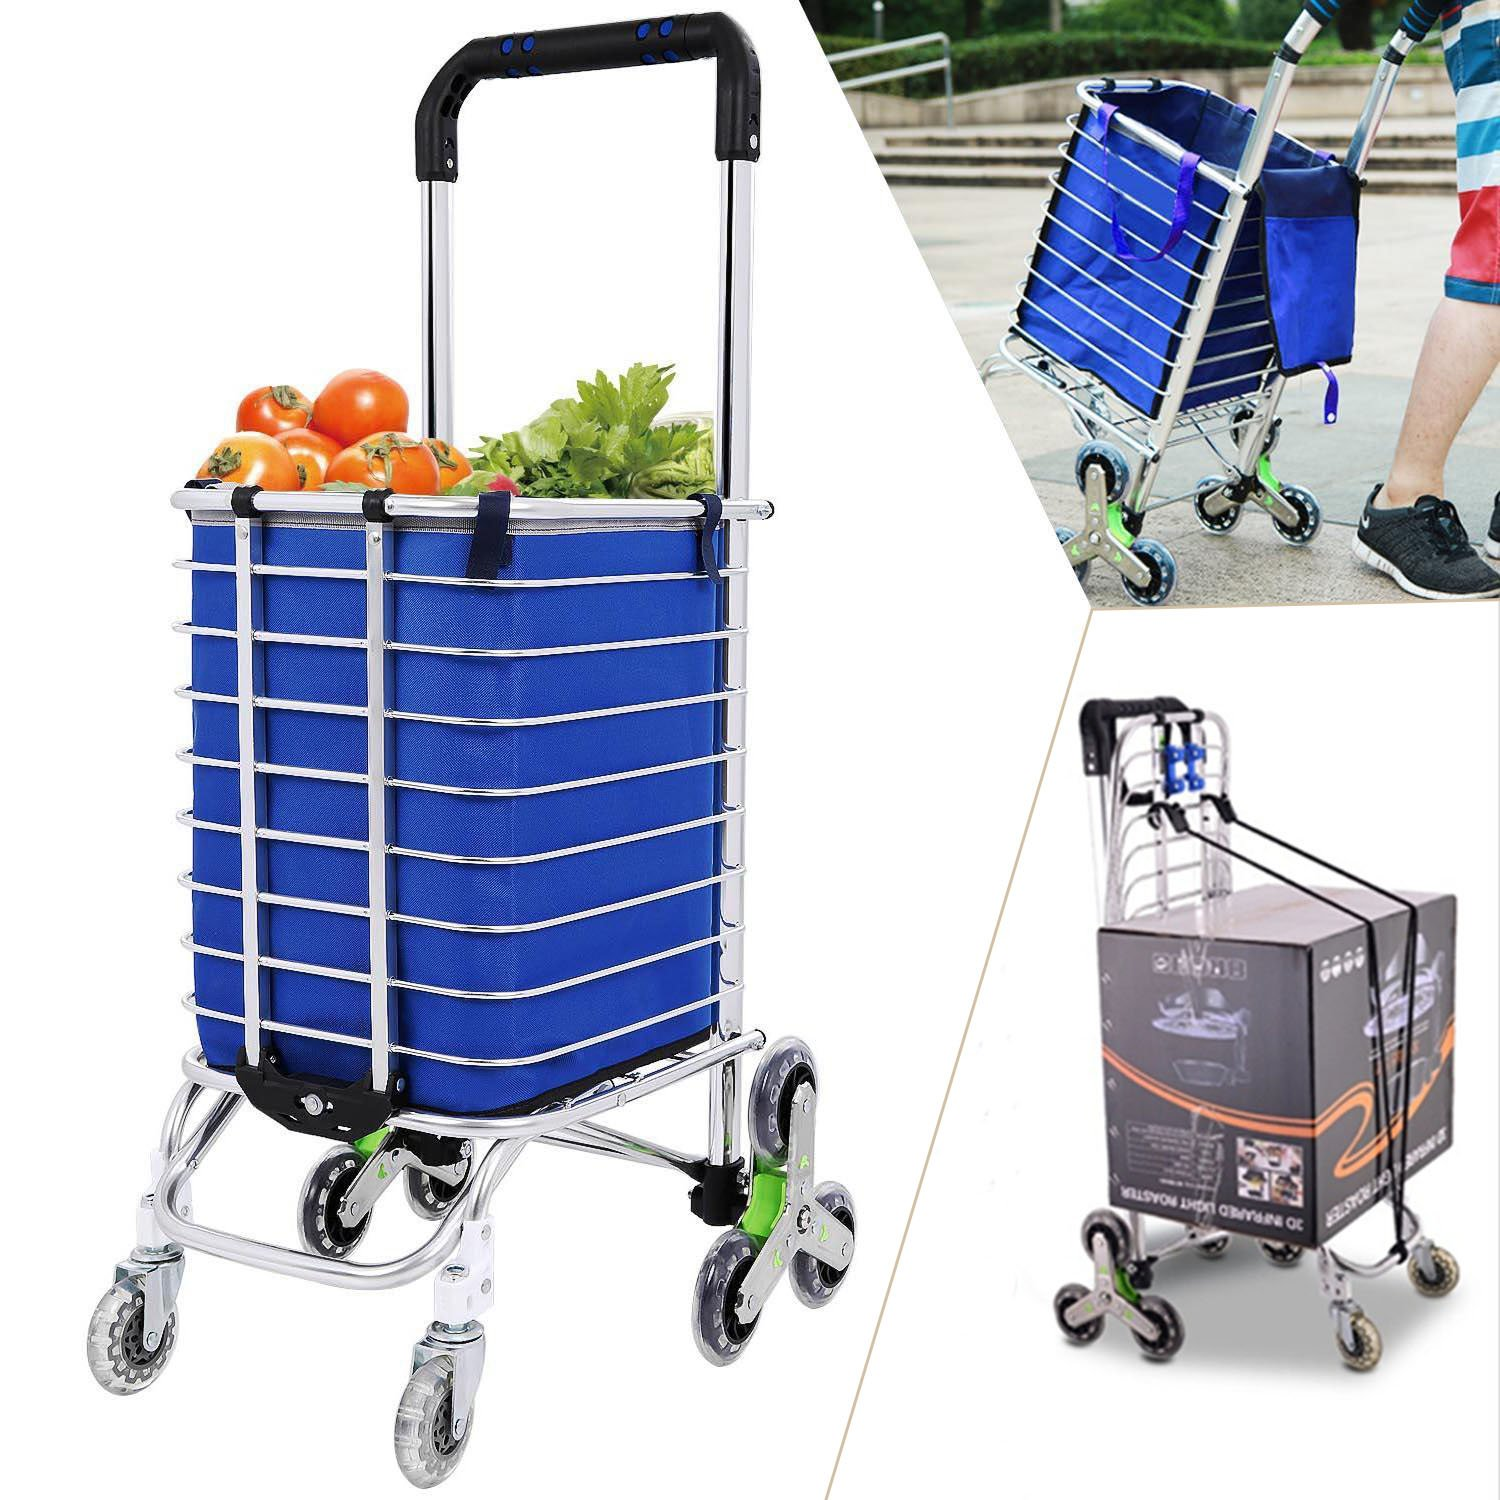 Folding Shopping Cart, Stair Climbing Cart Grocery Laundry Utility Cart with Wheel Bearings, Holds up to 176 lbs